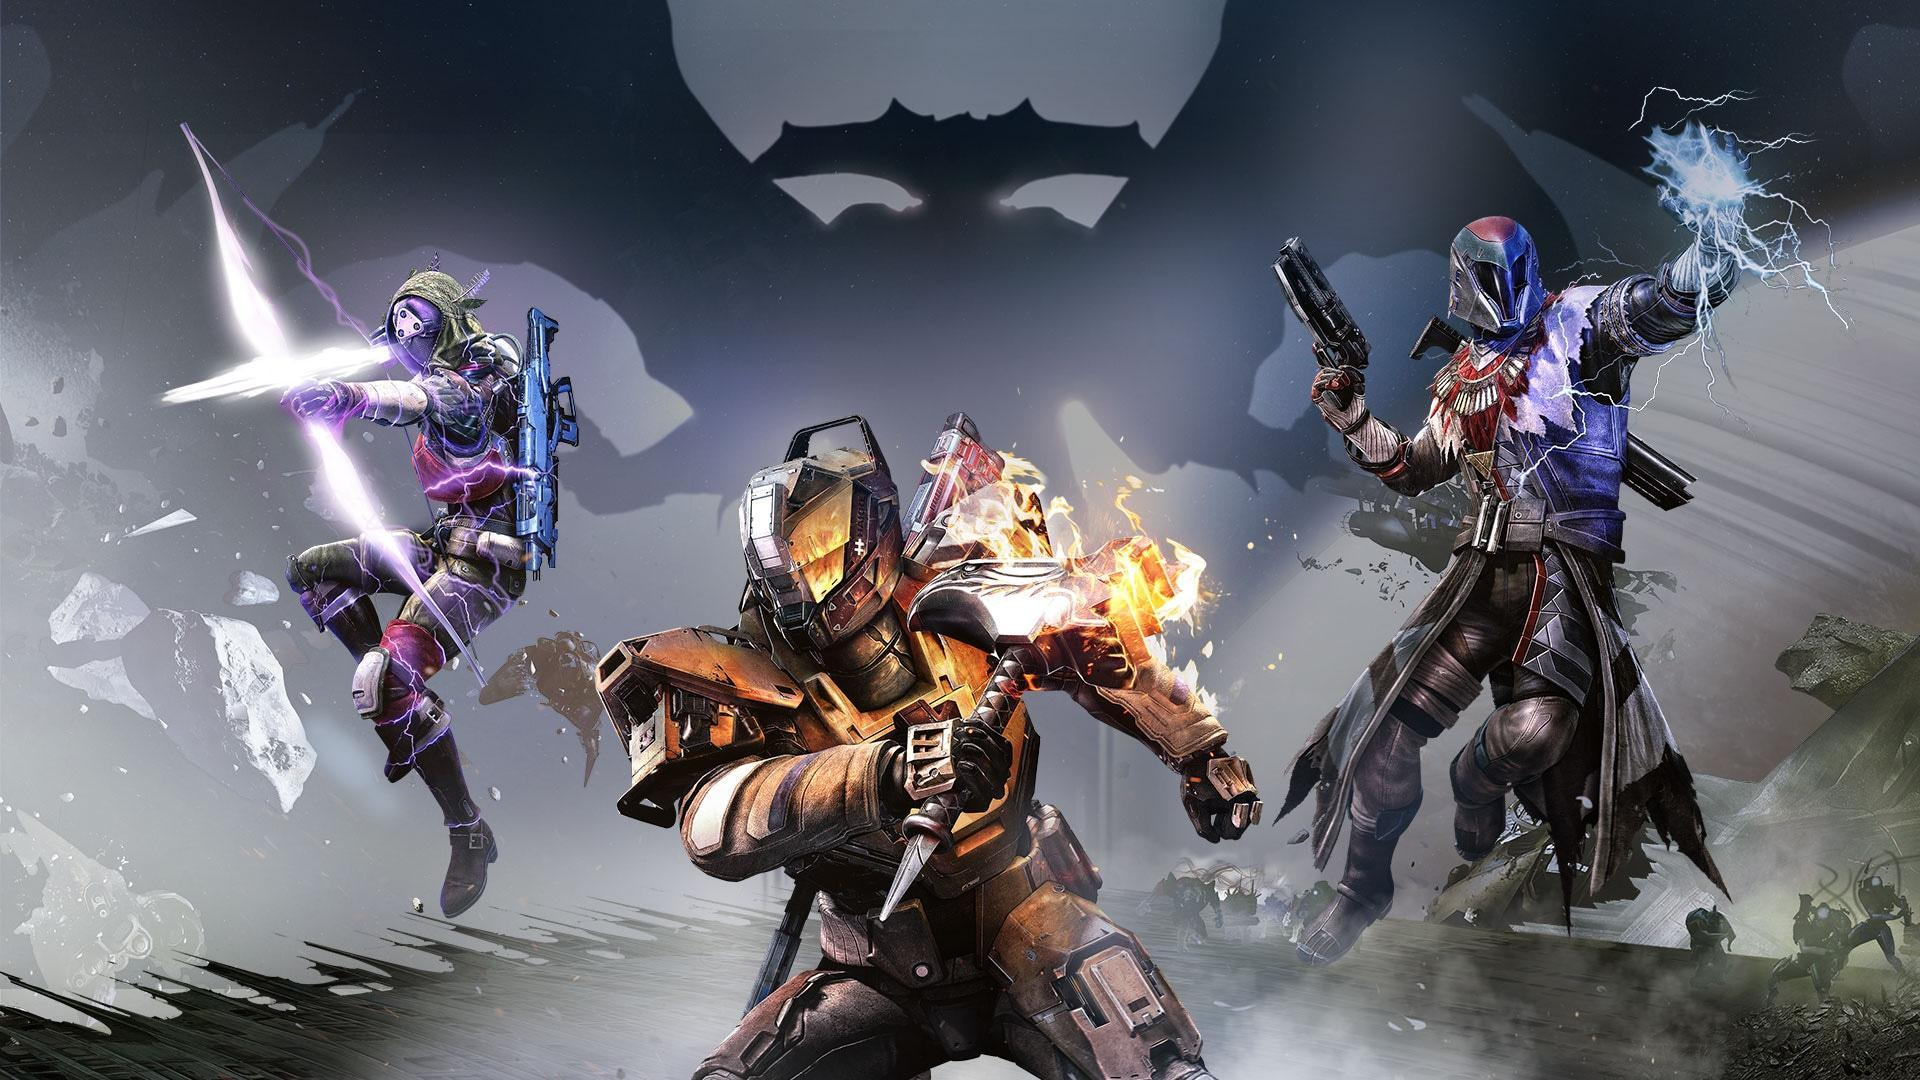 What Destiny character are you?